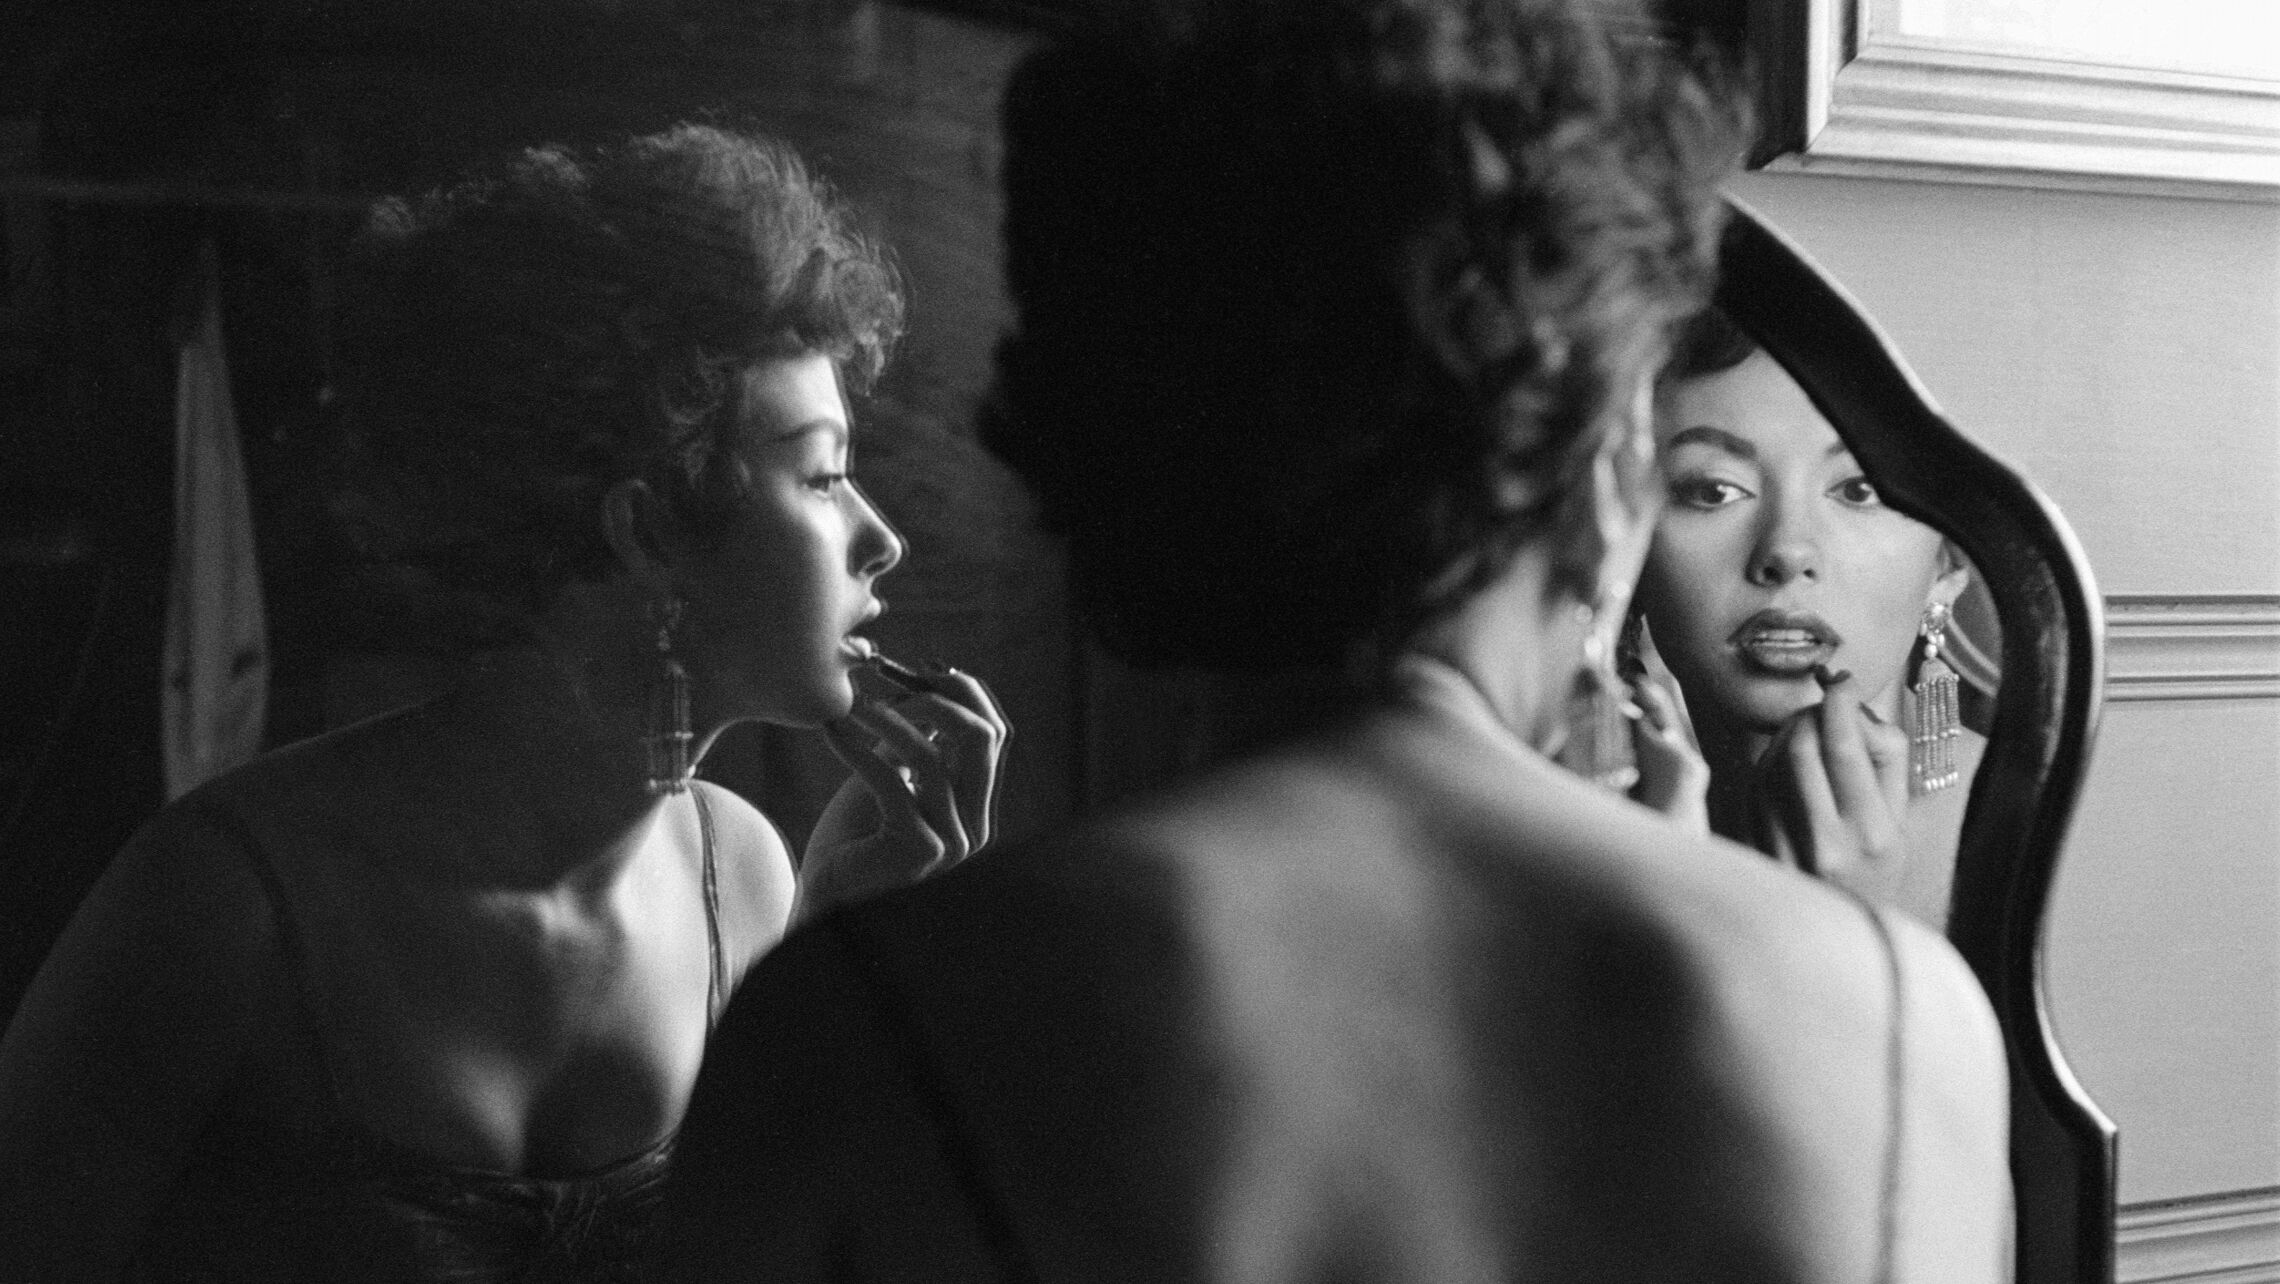 A woman in slip negligee is photographed from behind as she looks in folding mirror, applying lipstick.